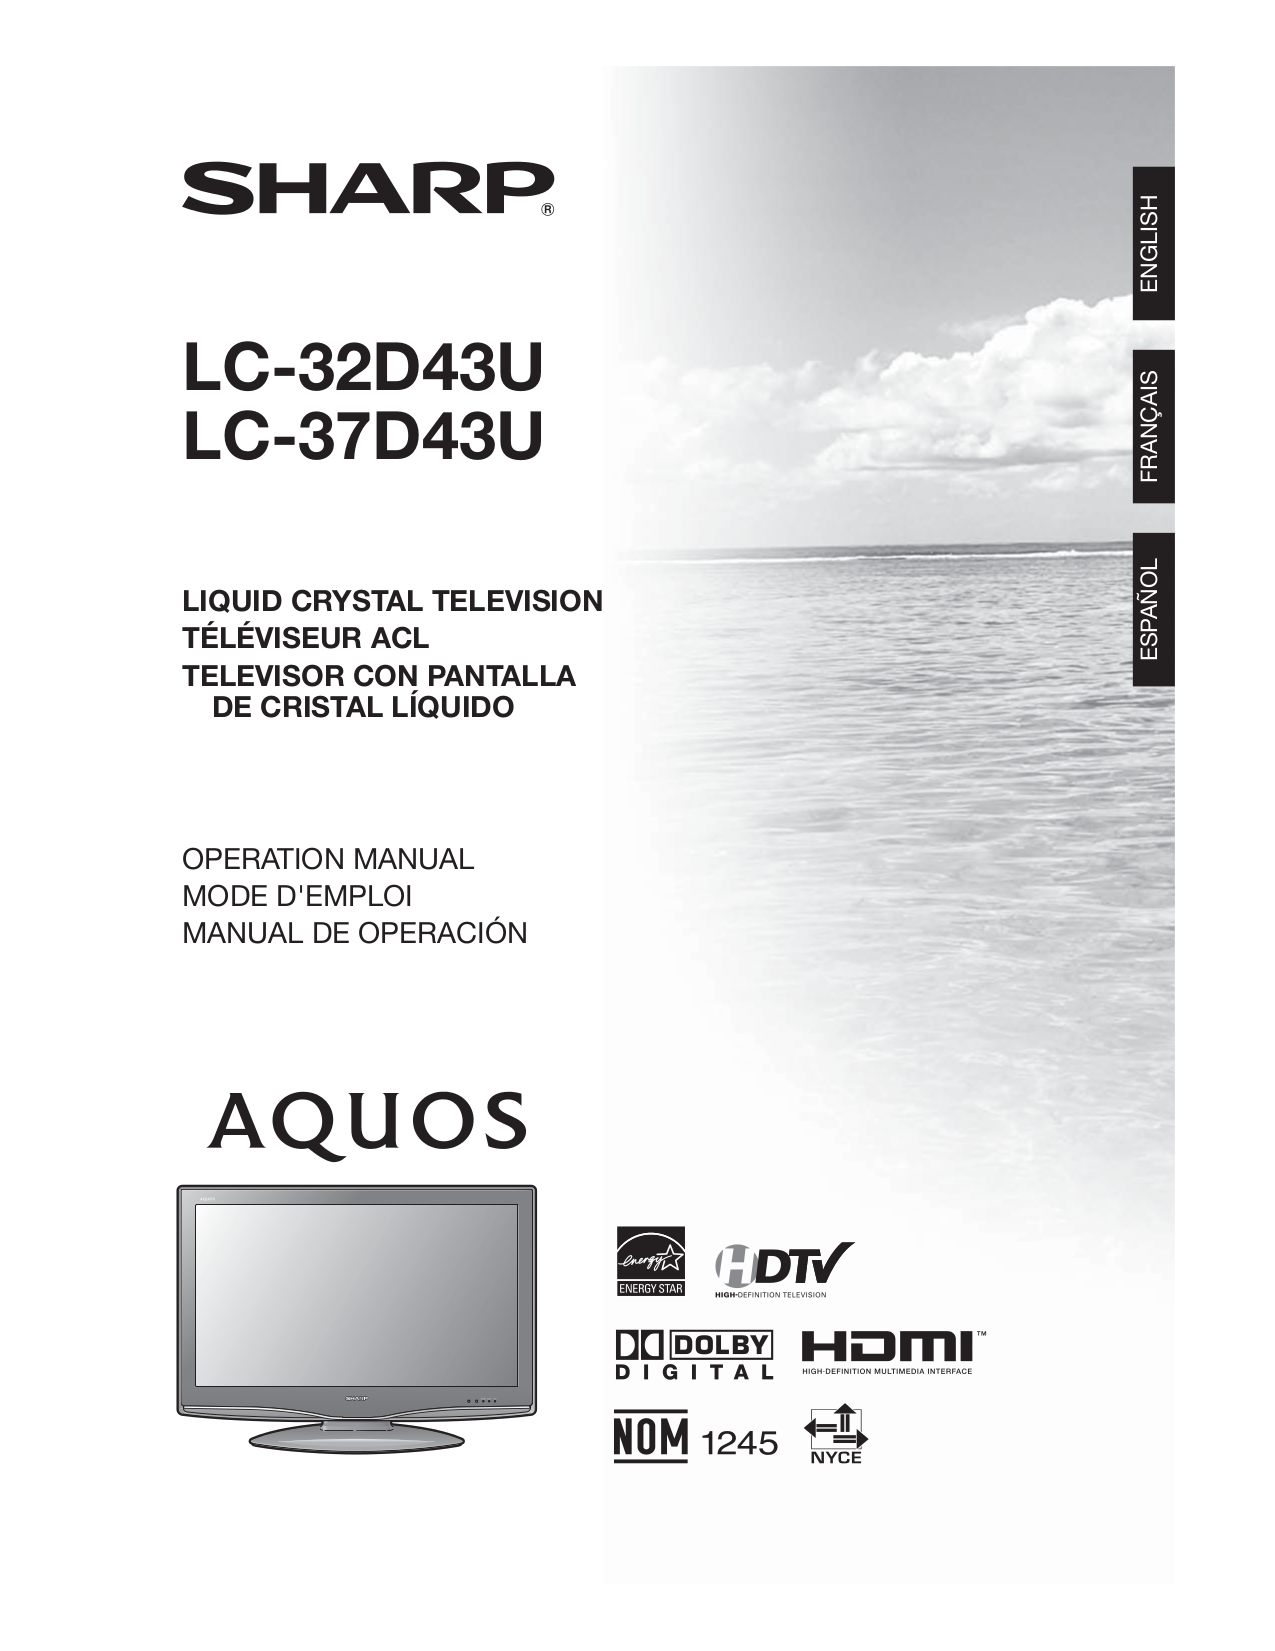 sharp aquos quattron owners manual how to and user guide rh taxibermuda co sharp user manual tv sharp user manual download